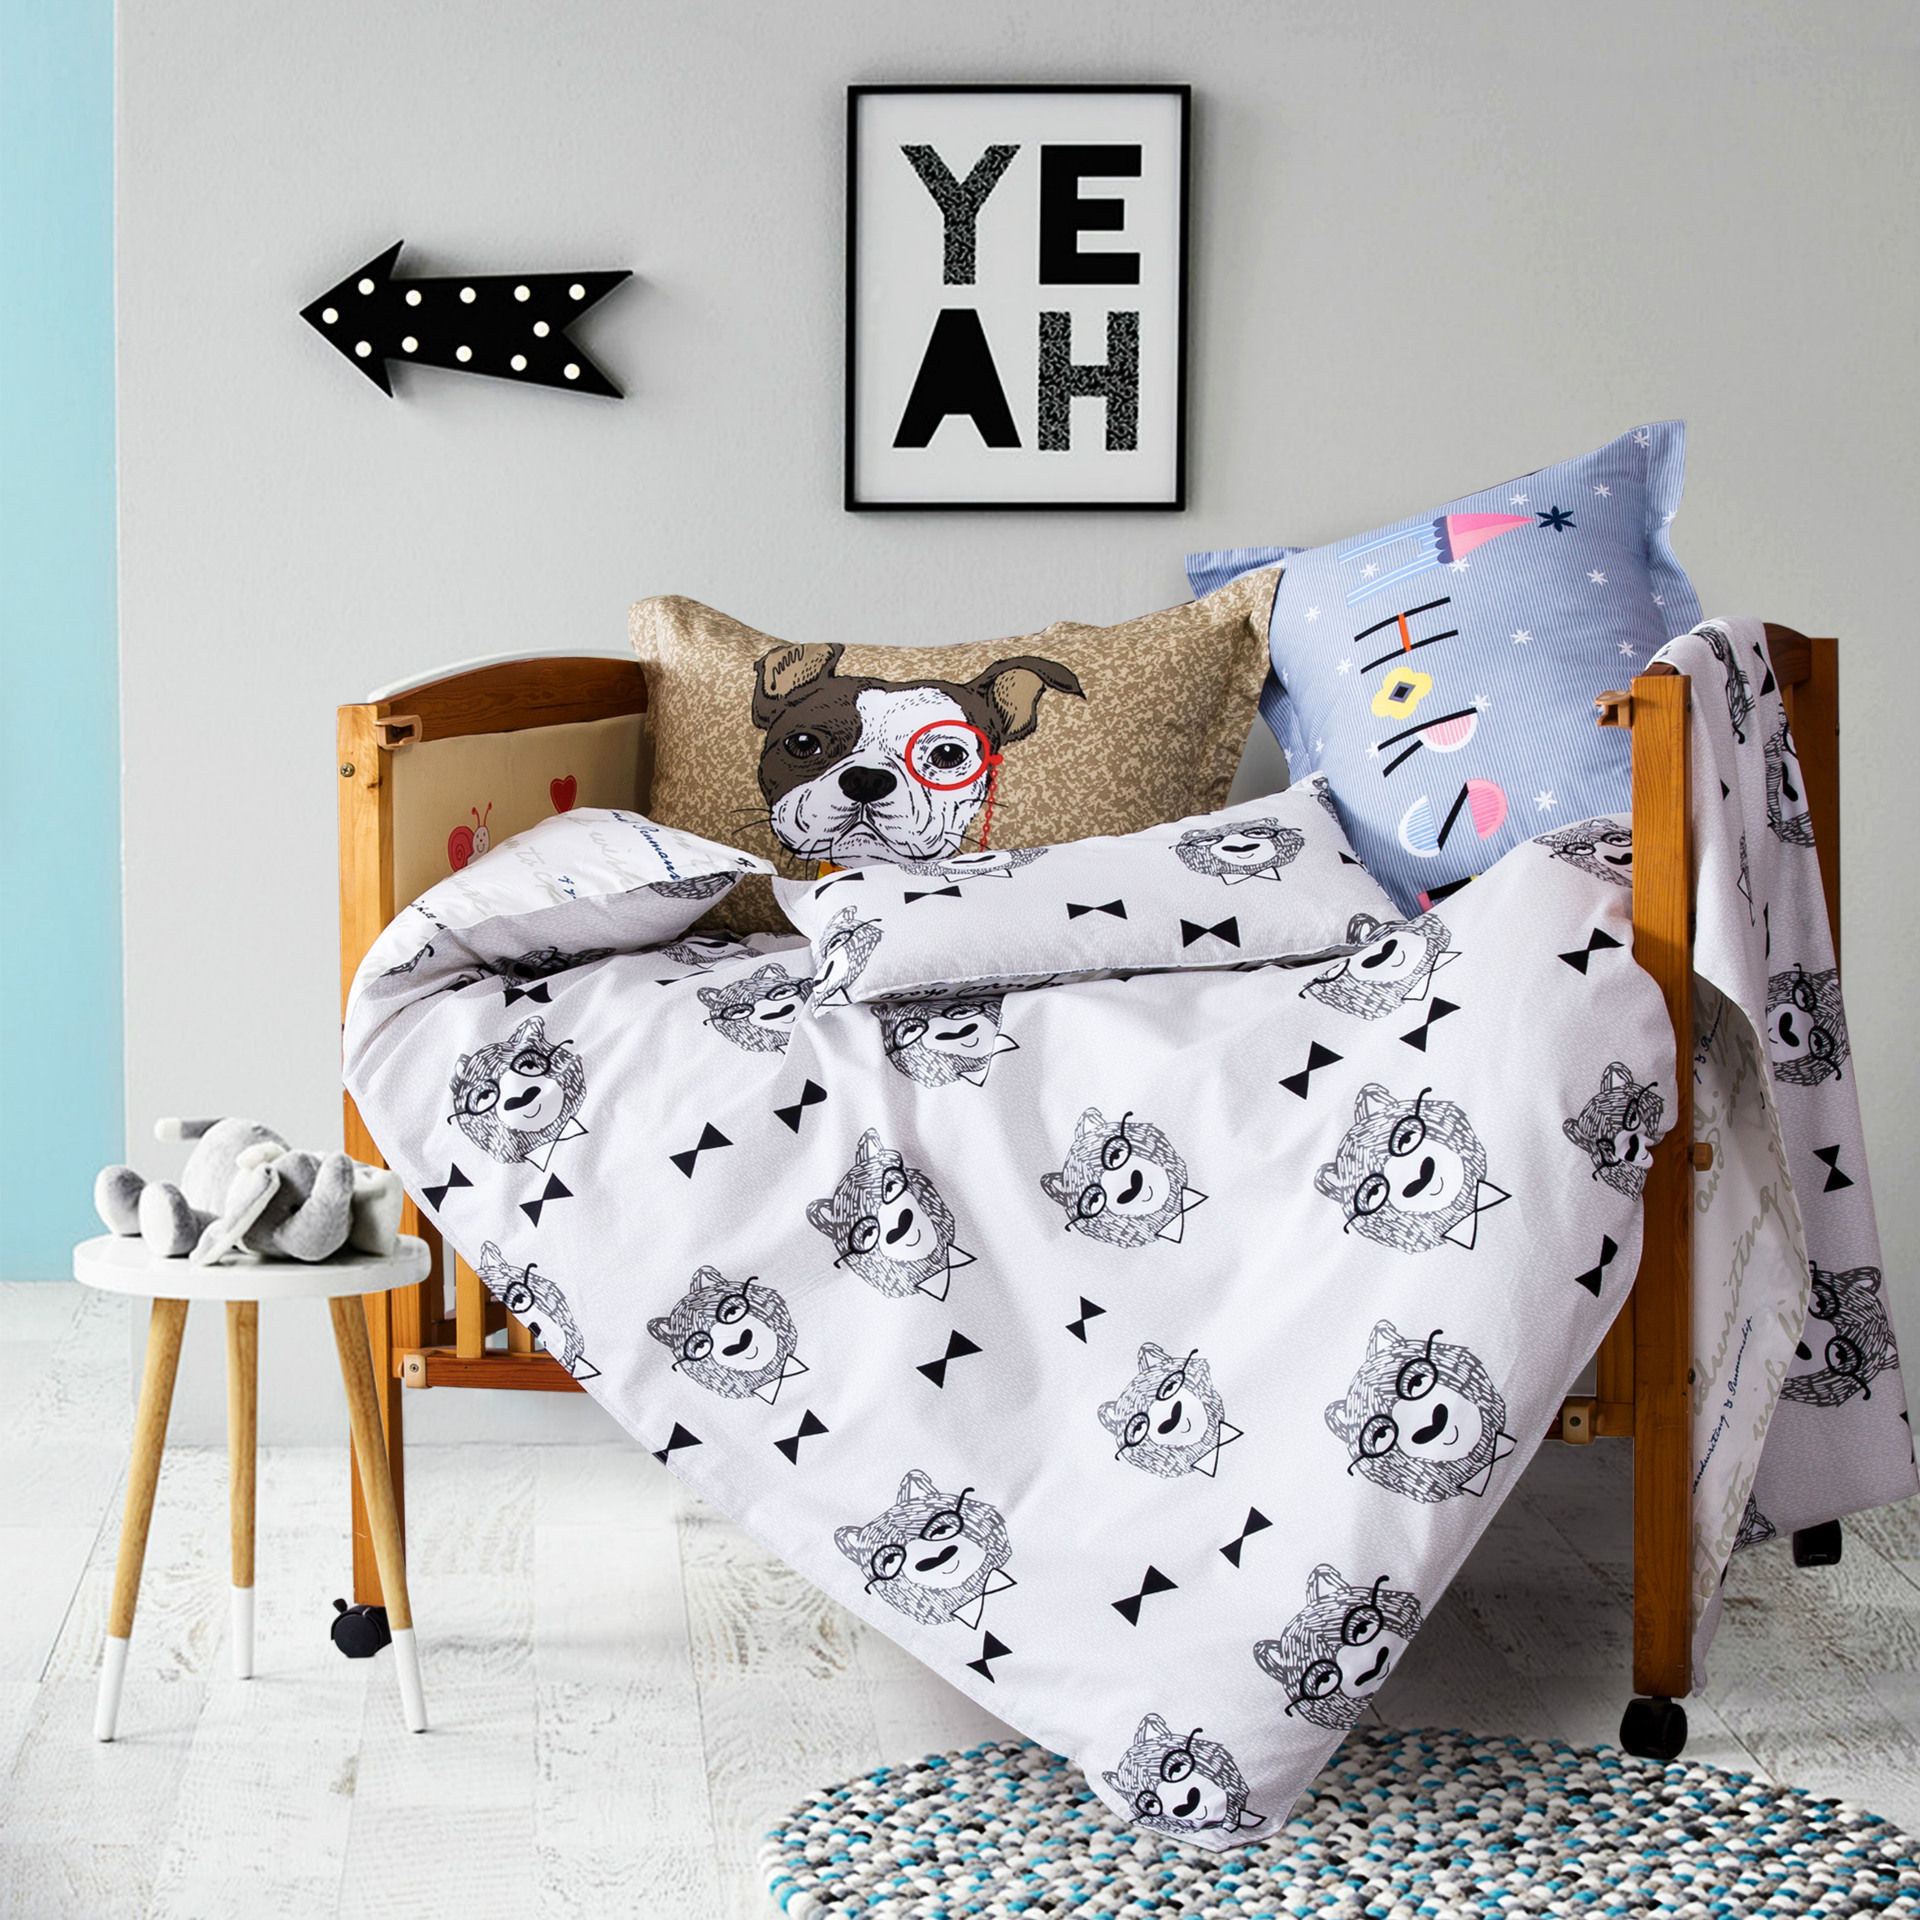 3pcs set for baby bed crib bedding set baby bedding Cartoon design for girls boys bedding duvet / quilt cover pillowcase sheet nursery bedding baby boy cartoon quilt cover for bed crib sheet pillowcase 100% cotton bedding set